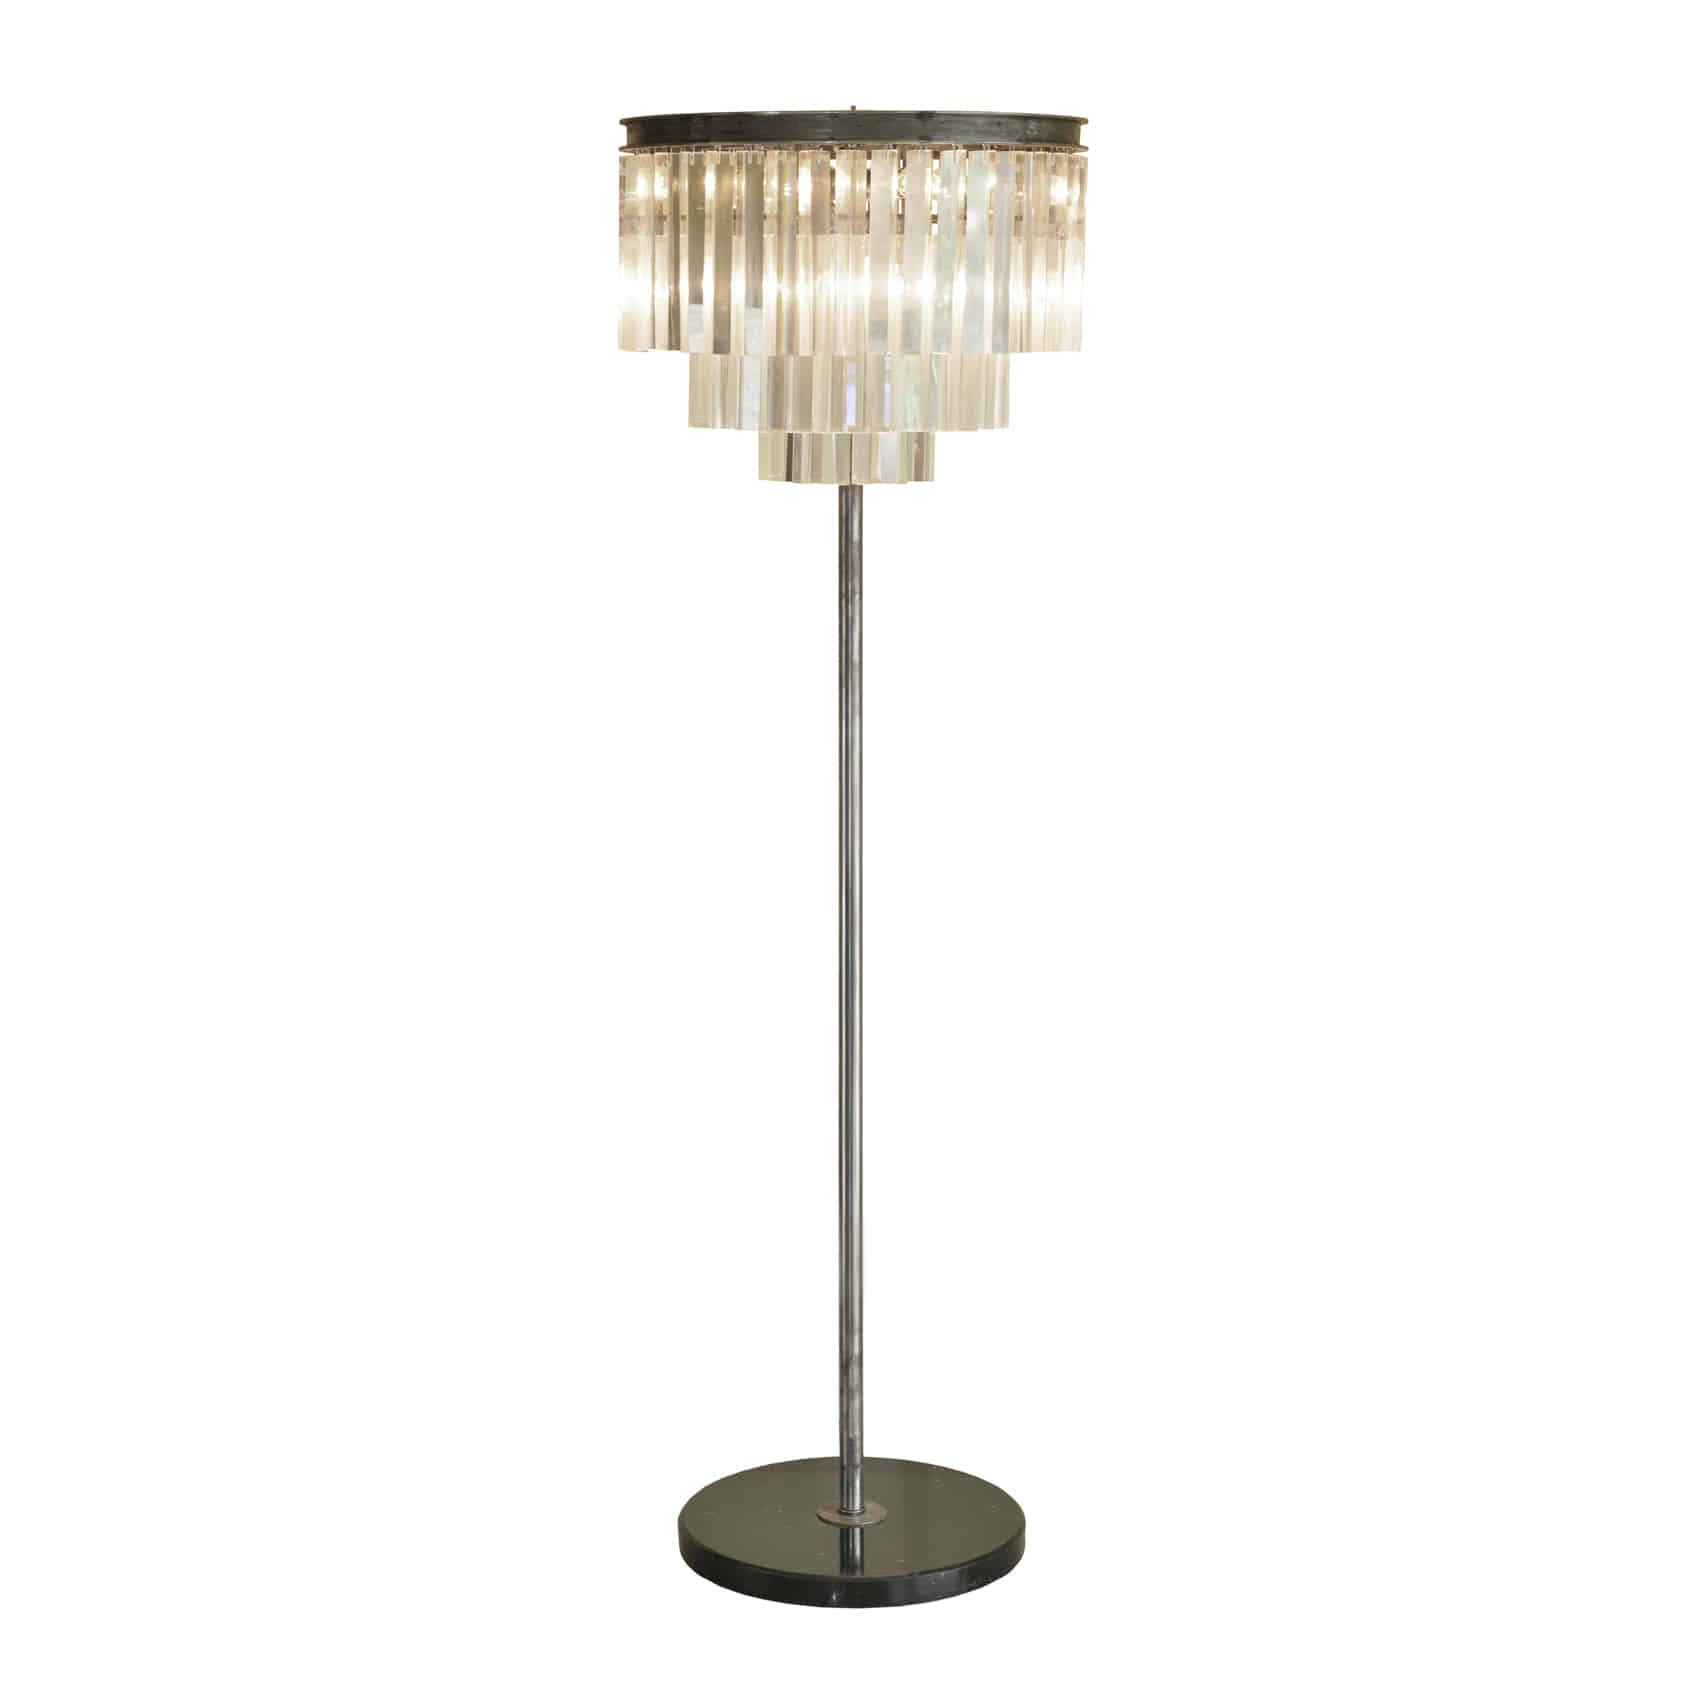 ODEON FLR LAMP-NAT